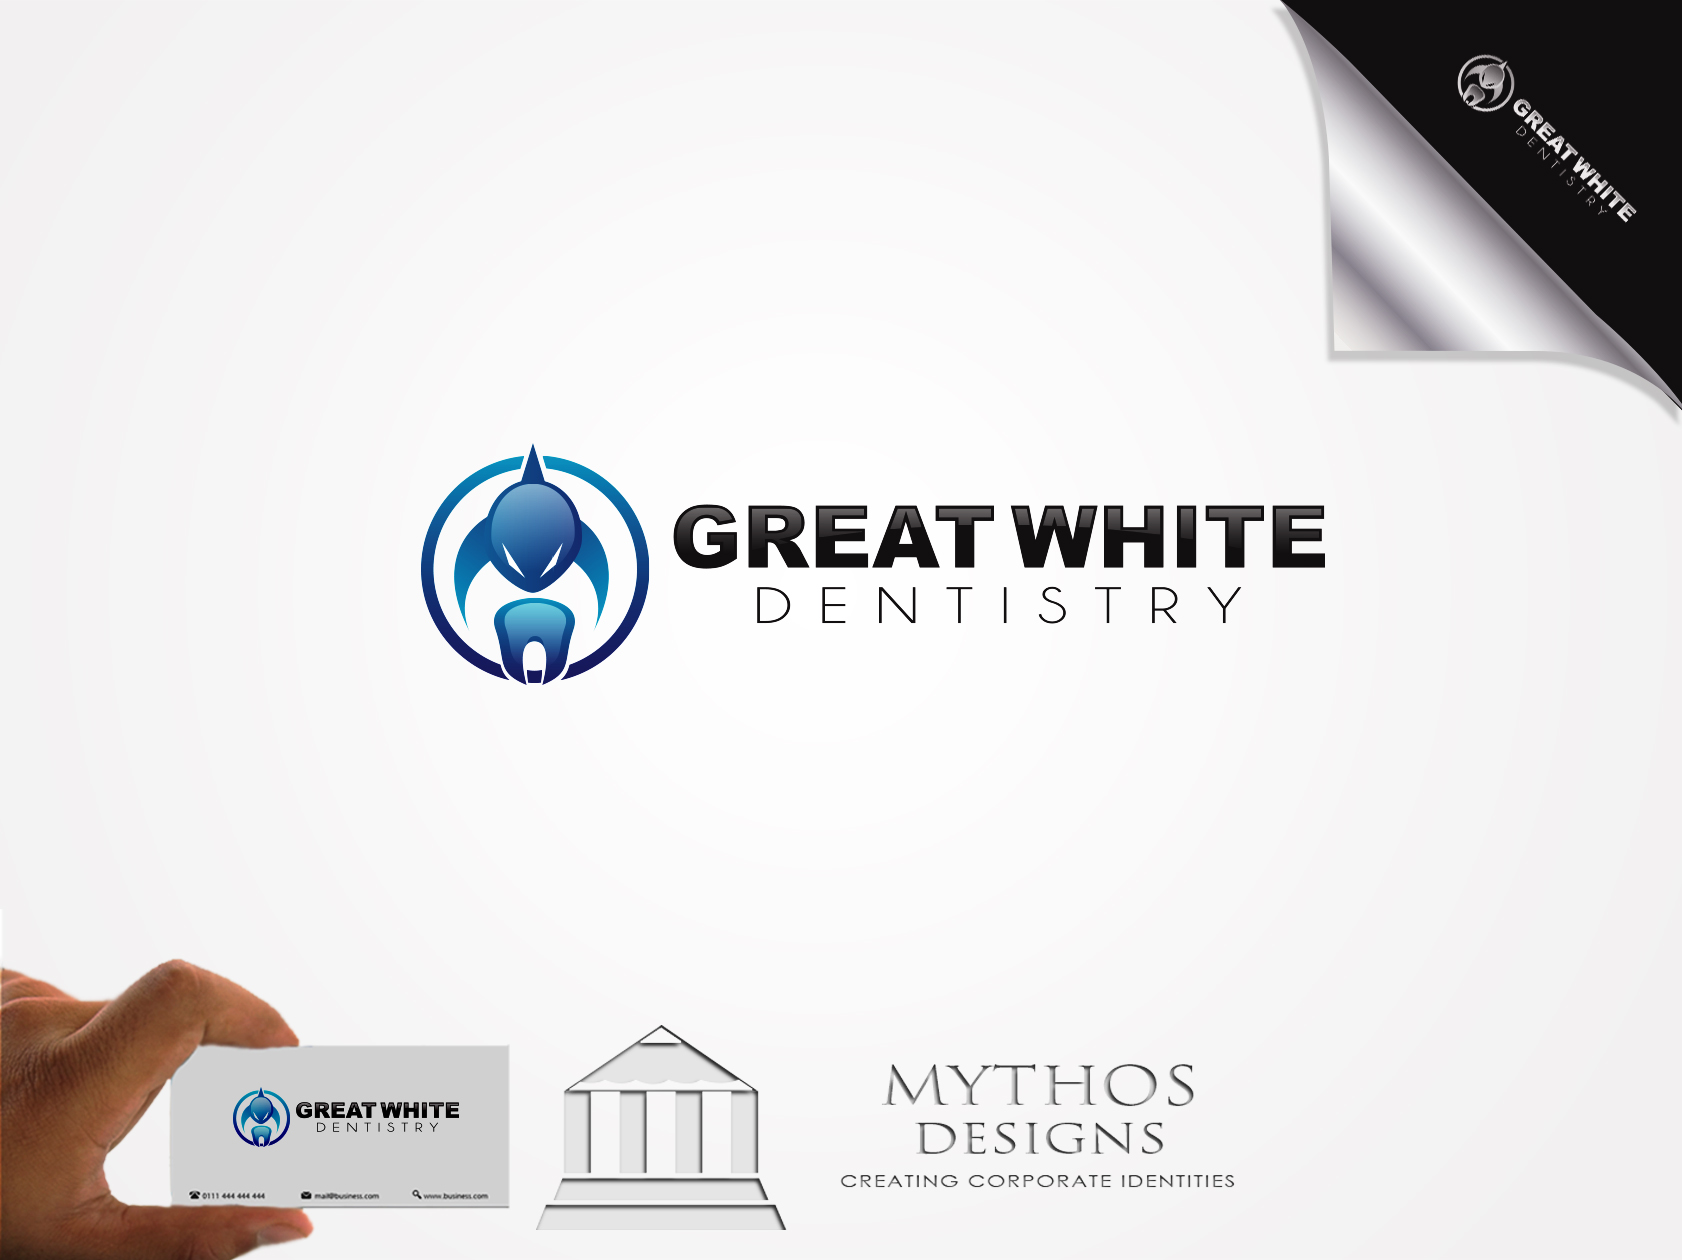 Logo Design by Mythos Designs - Entry No. 86 in the Logo Design Contest Logo Design for Great White Dentistry.